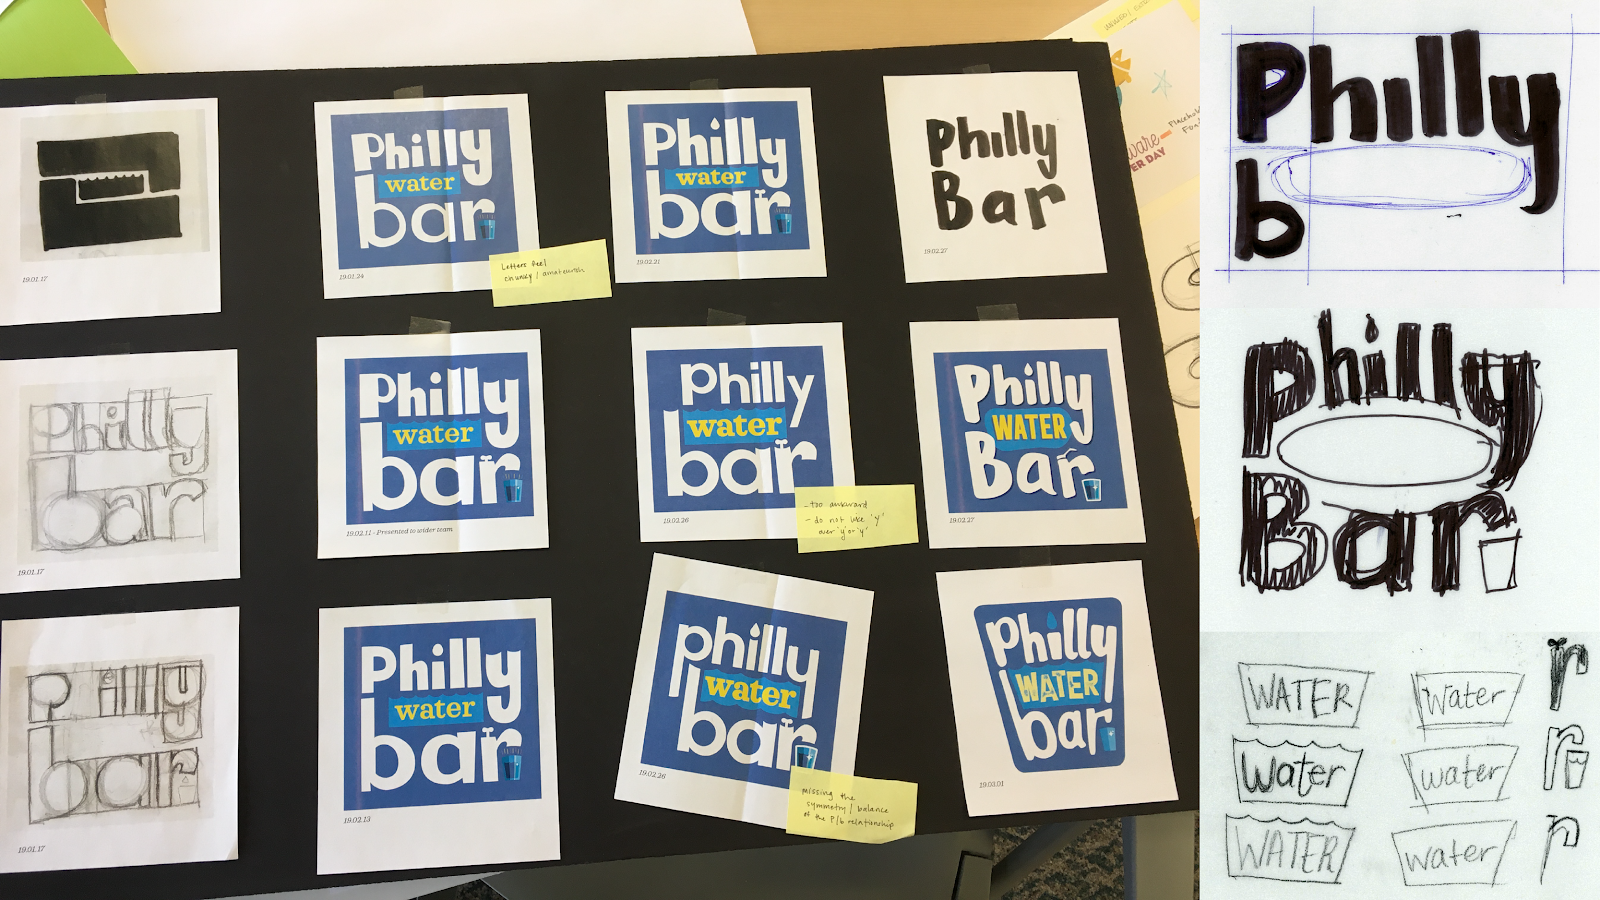 sketched ideas and various iterations of the Philly Water Bar logo pasted on a black board, with sticky-note comments next to some drafts